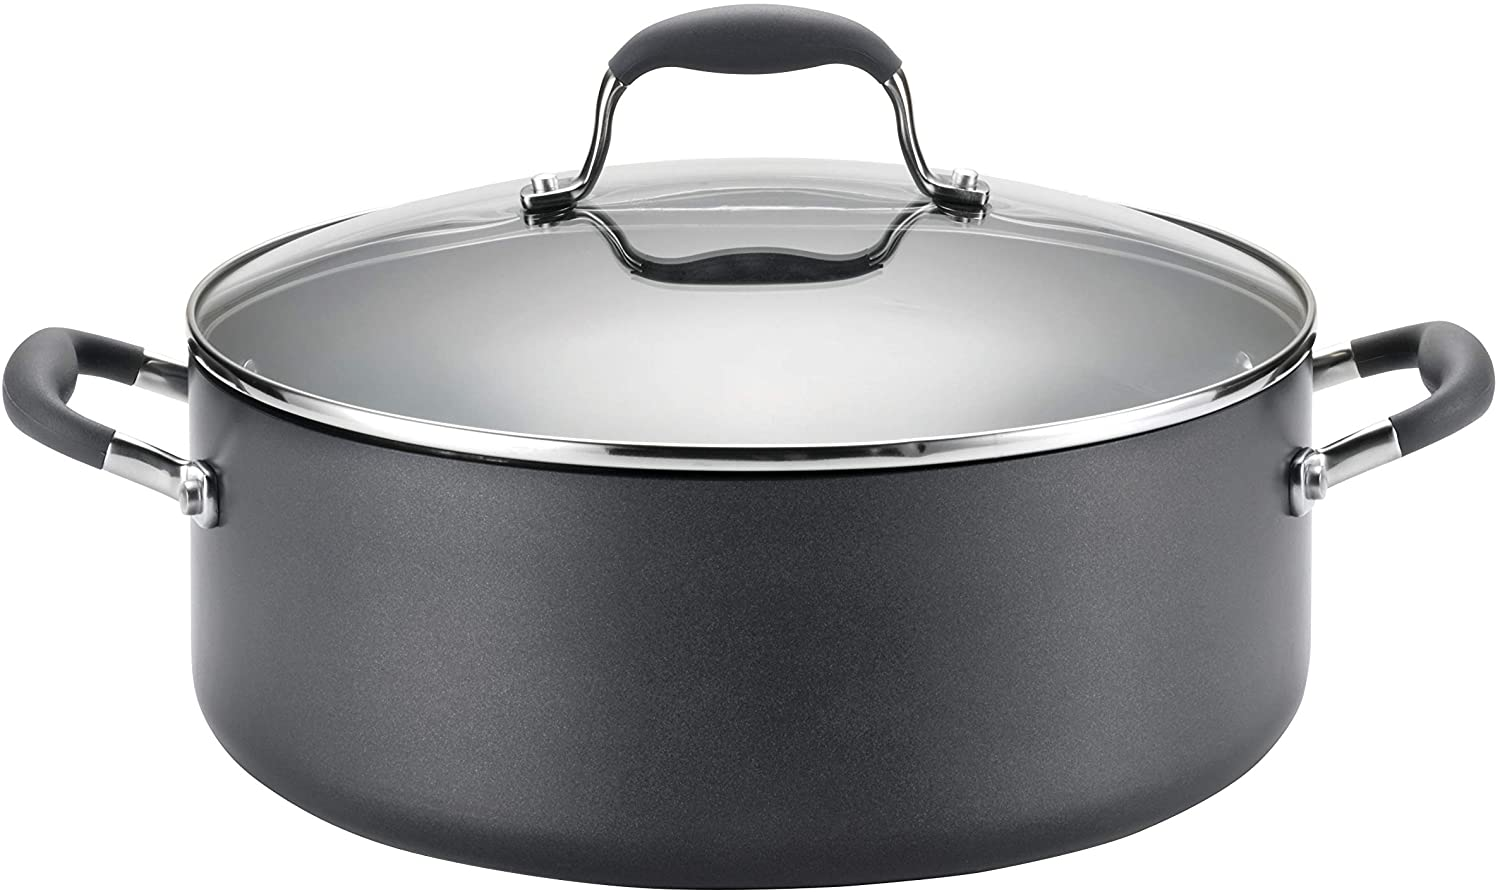 Anolon Anodized Nonstick Stockpot